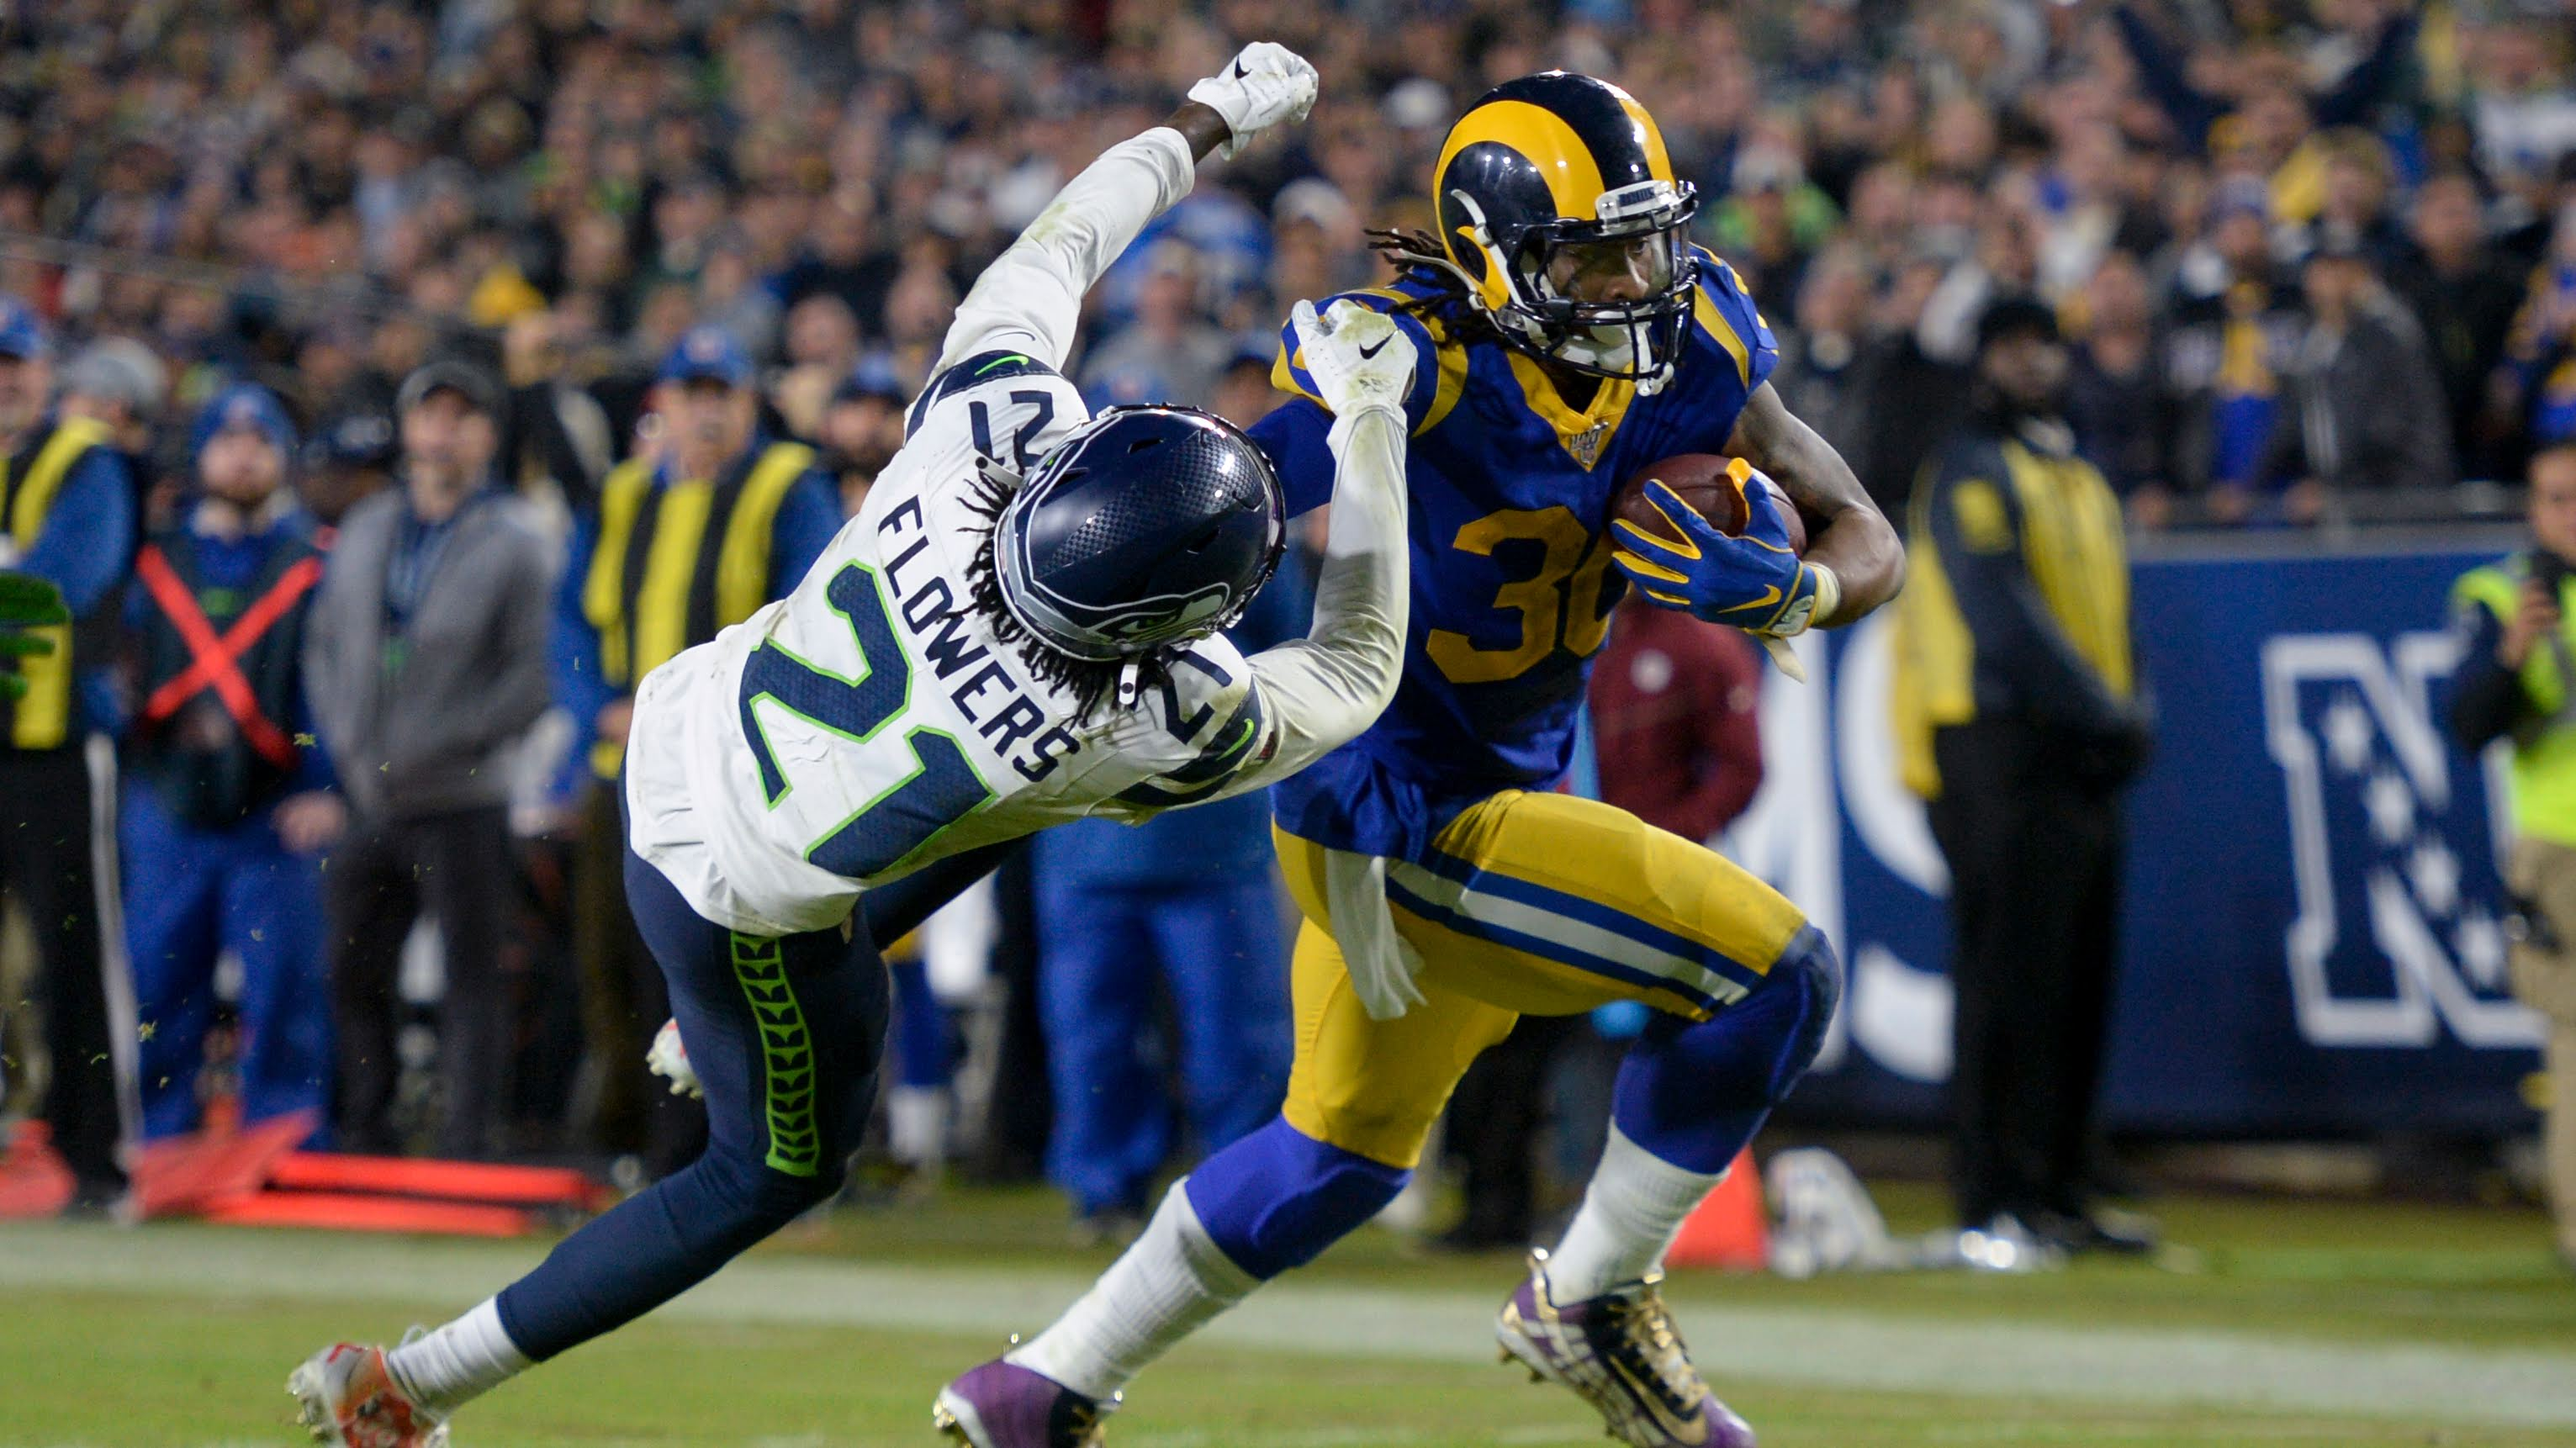 Los Angeles Rams Release Their Leading Rusher Todd Gurley